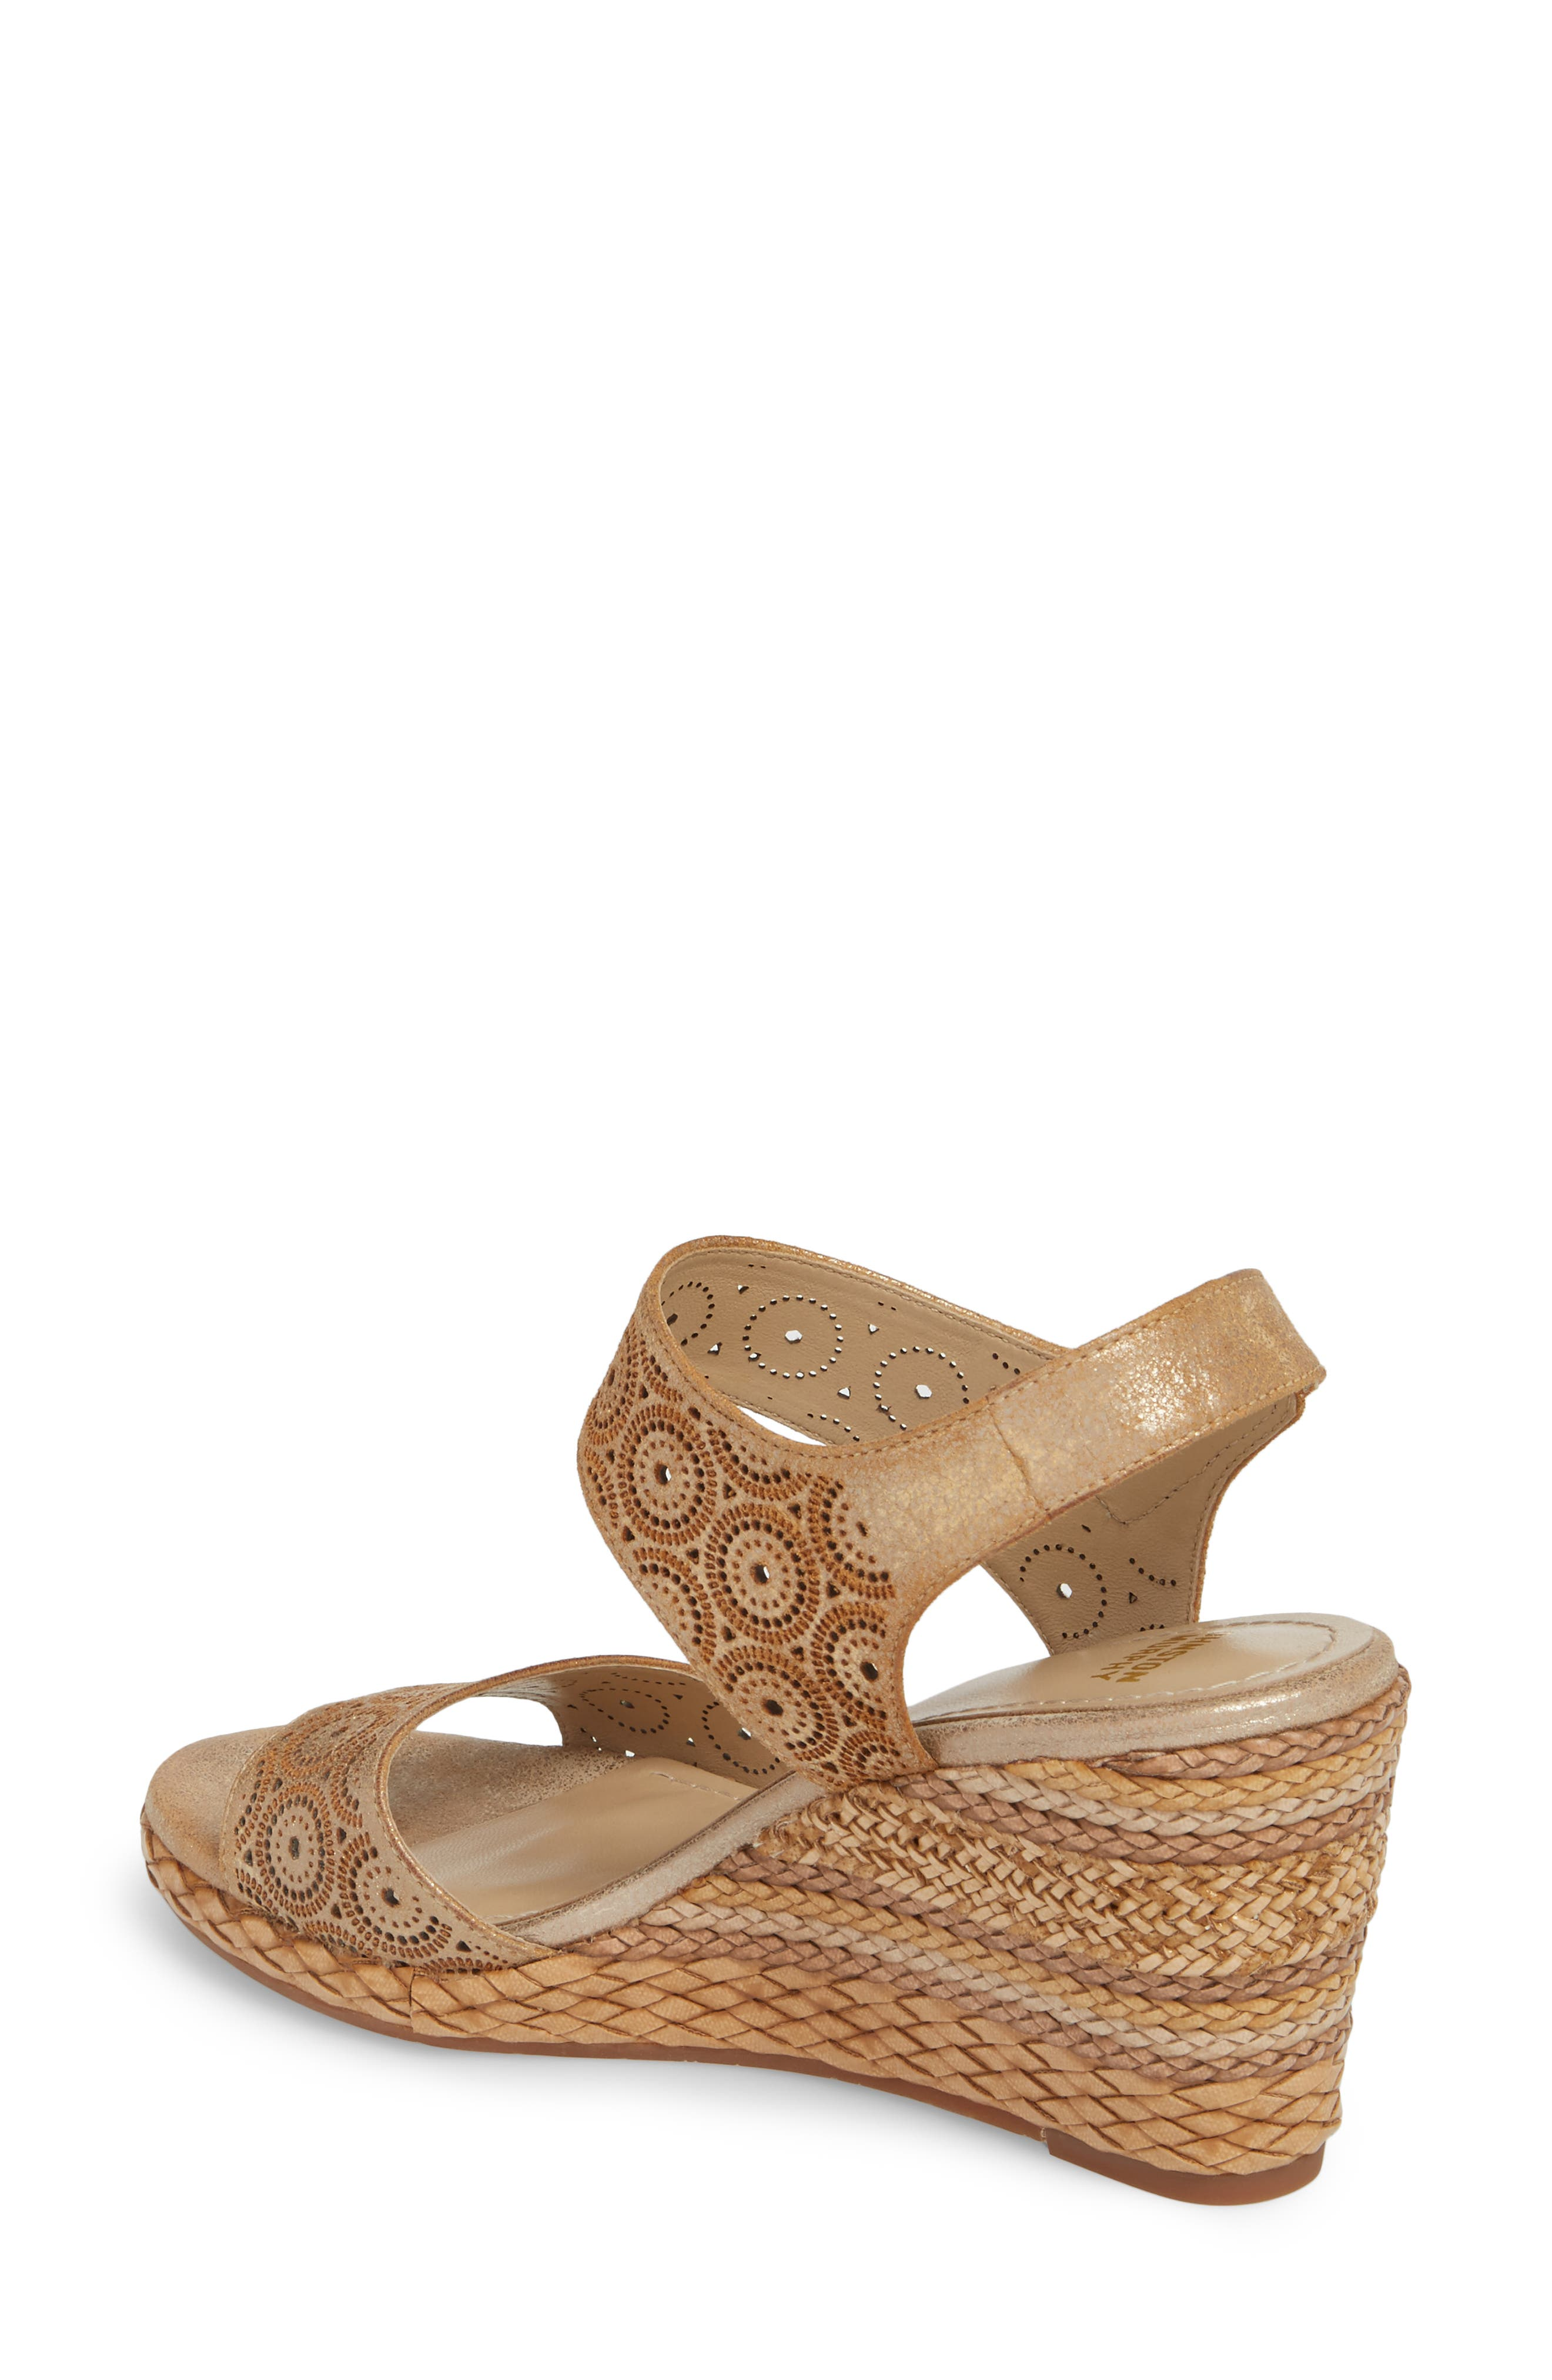 Georgiana Wedge Sandal,                             Alternate thumbnail 4, color,